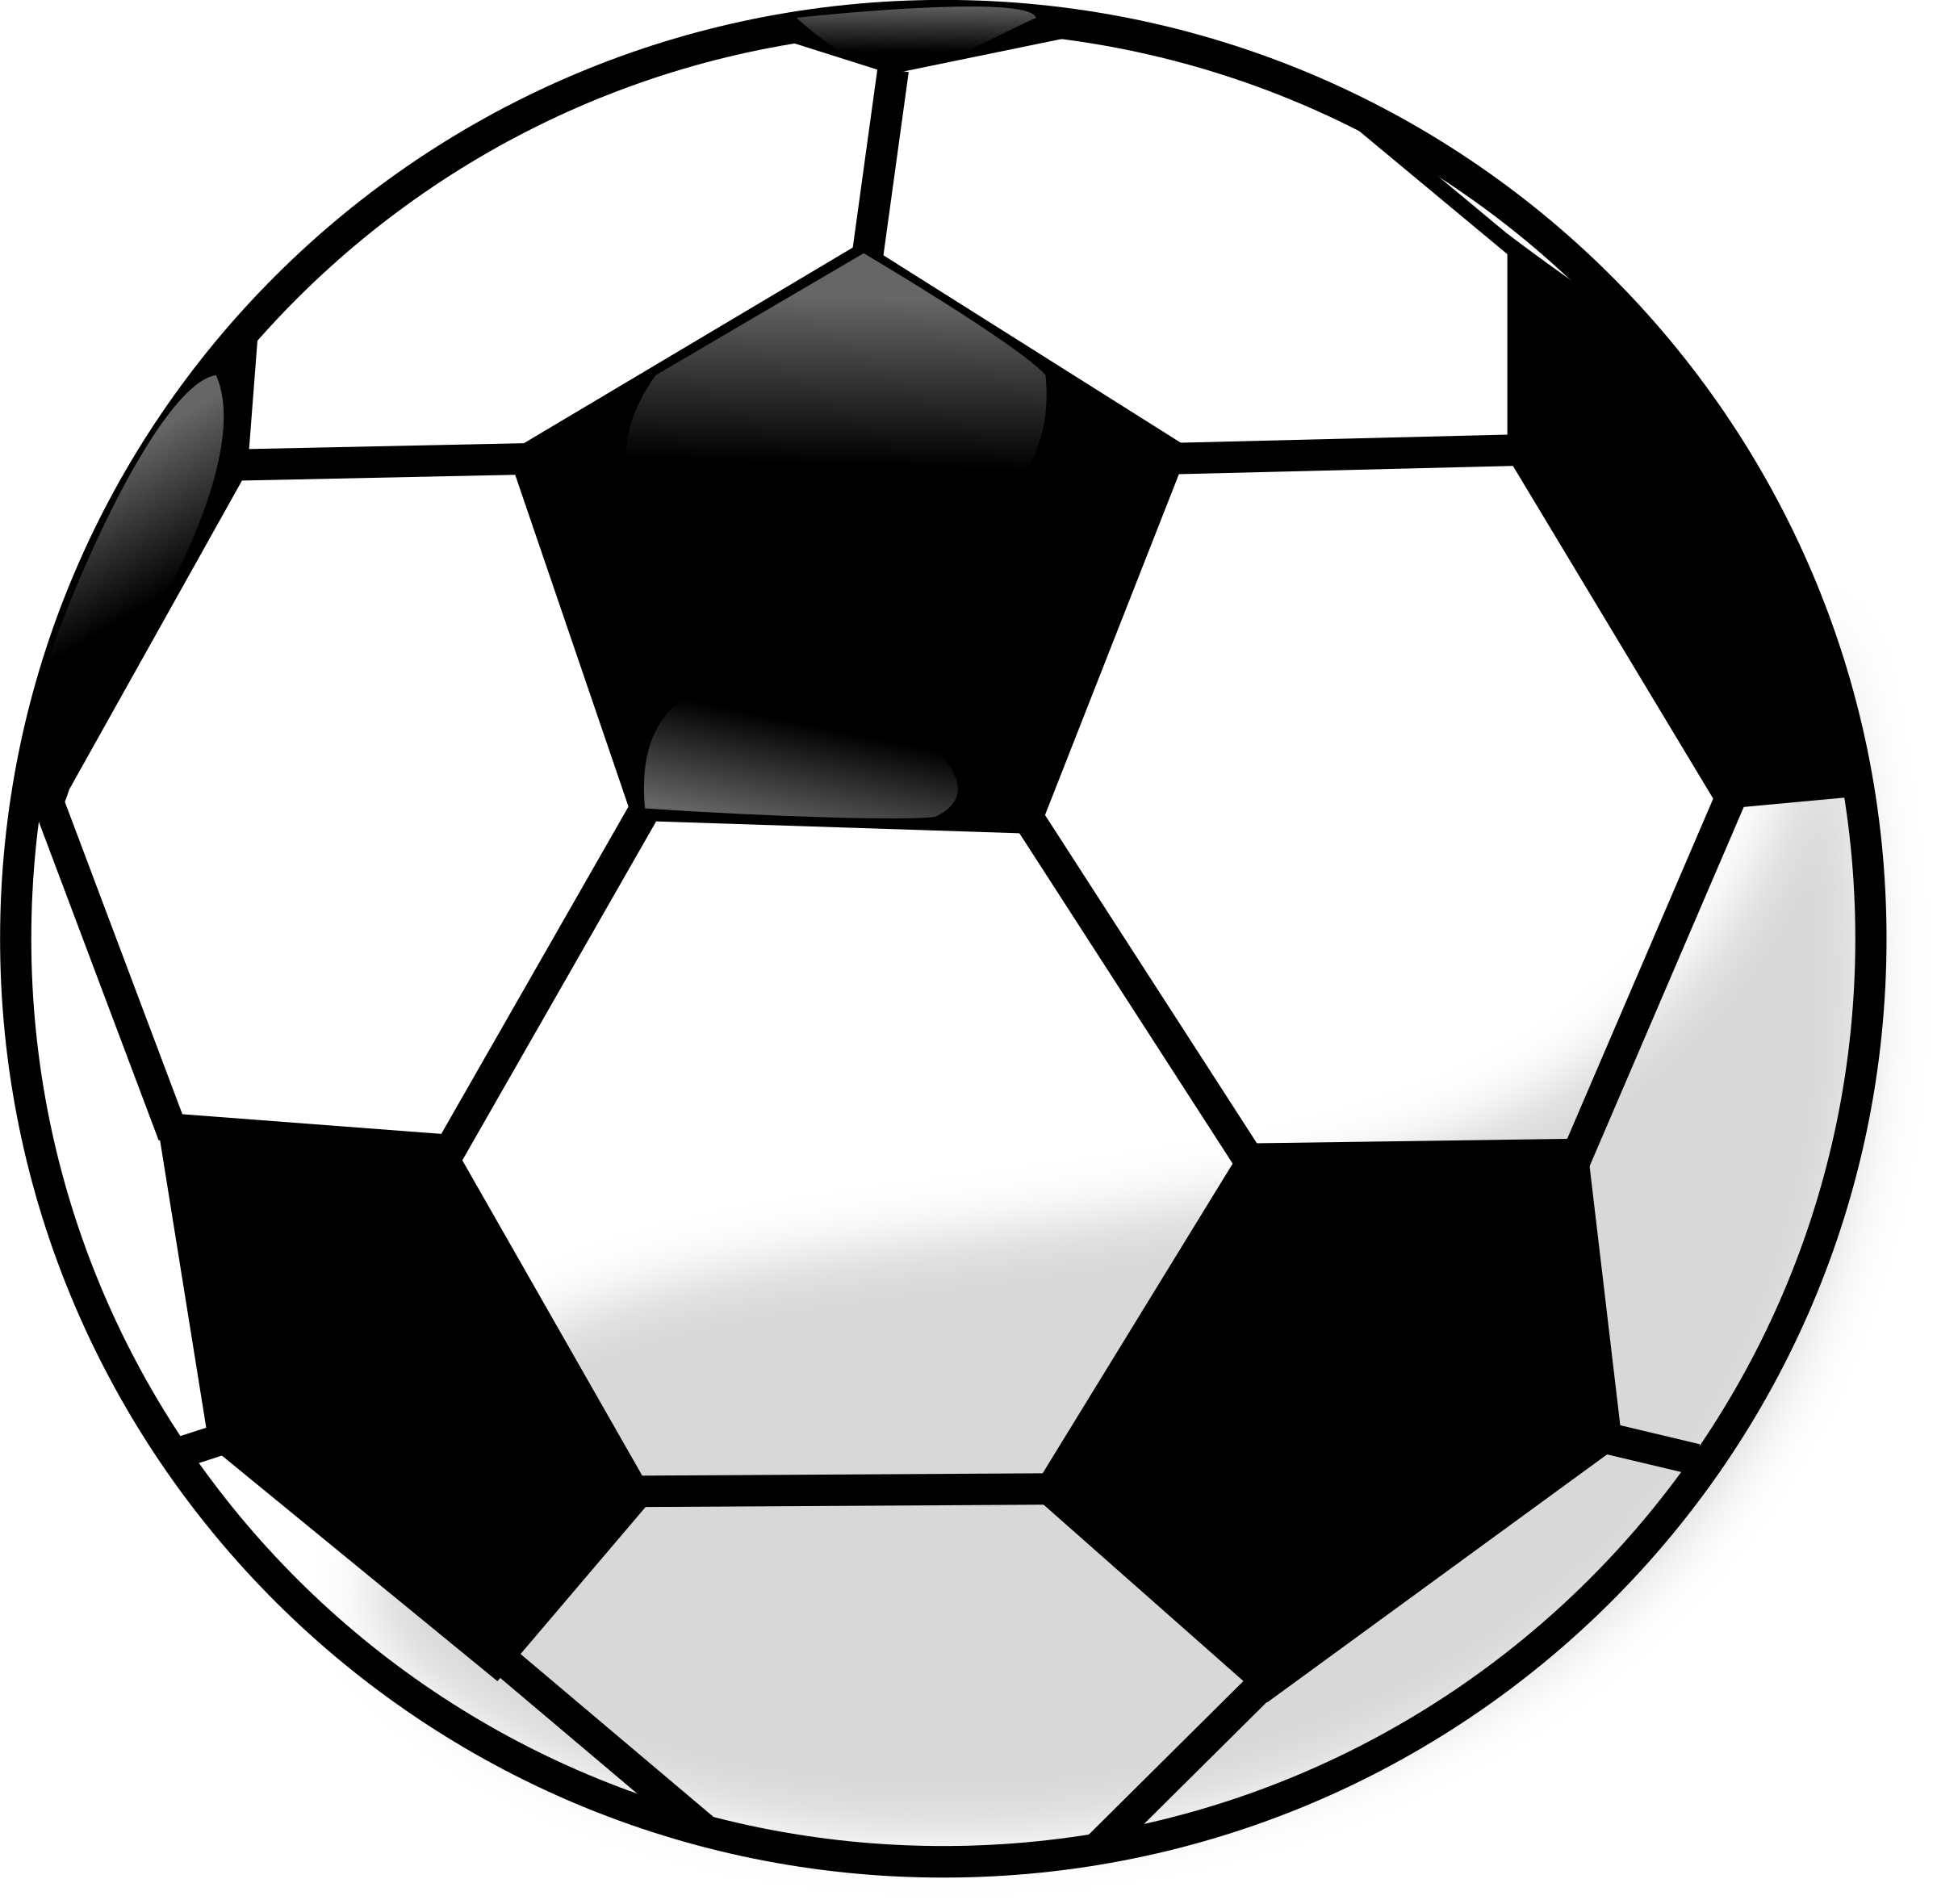 Clipart football clear background. Soccer ball